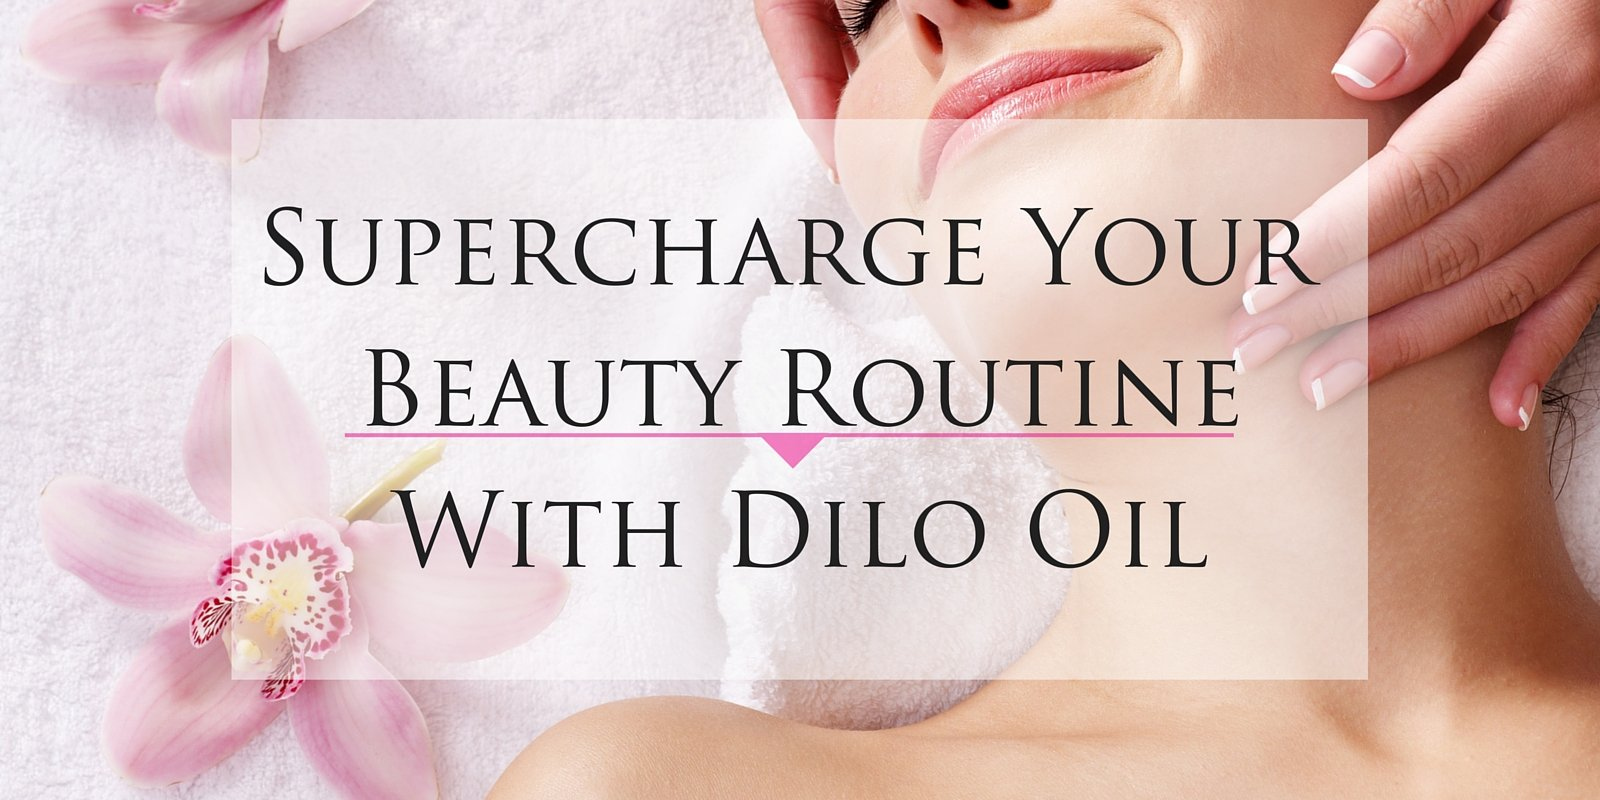 Supercharge Your Beauty Routine with Dilo Oil